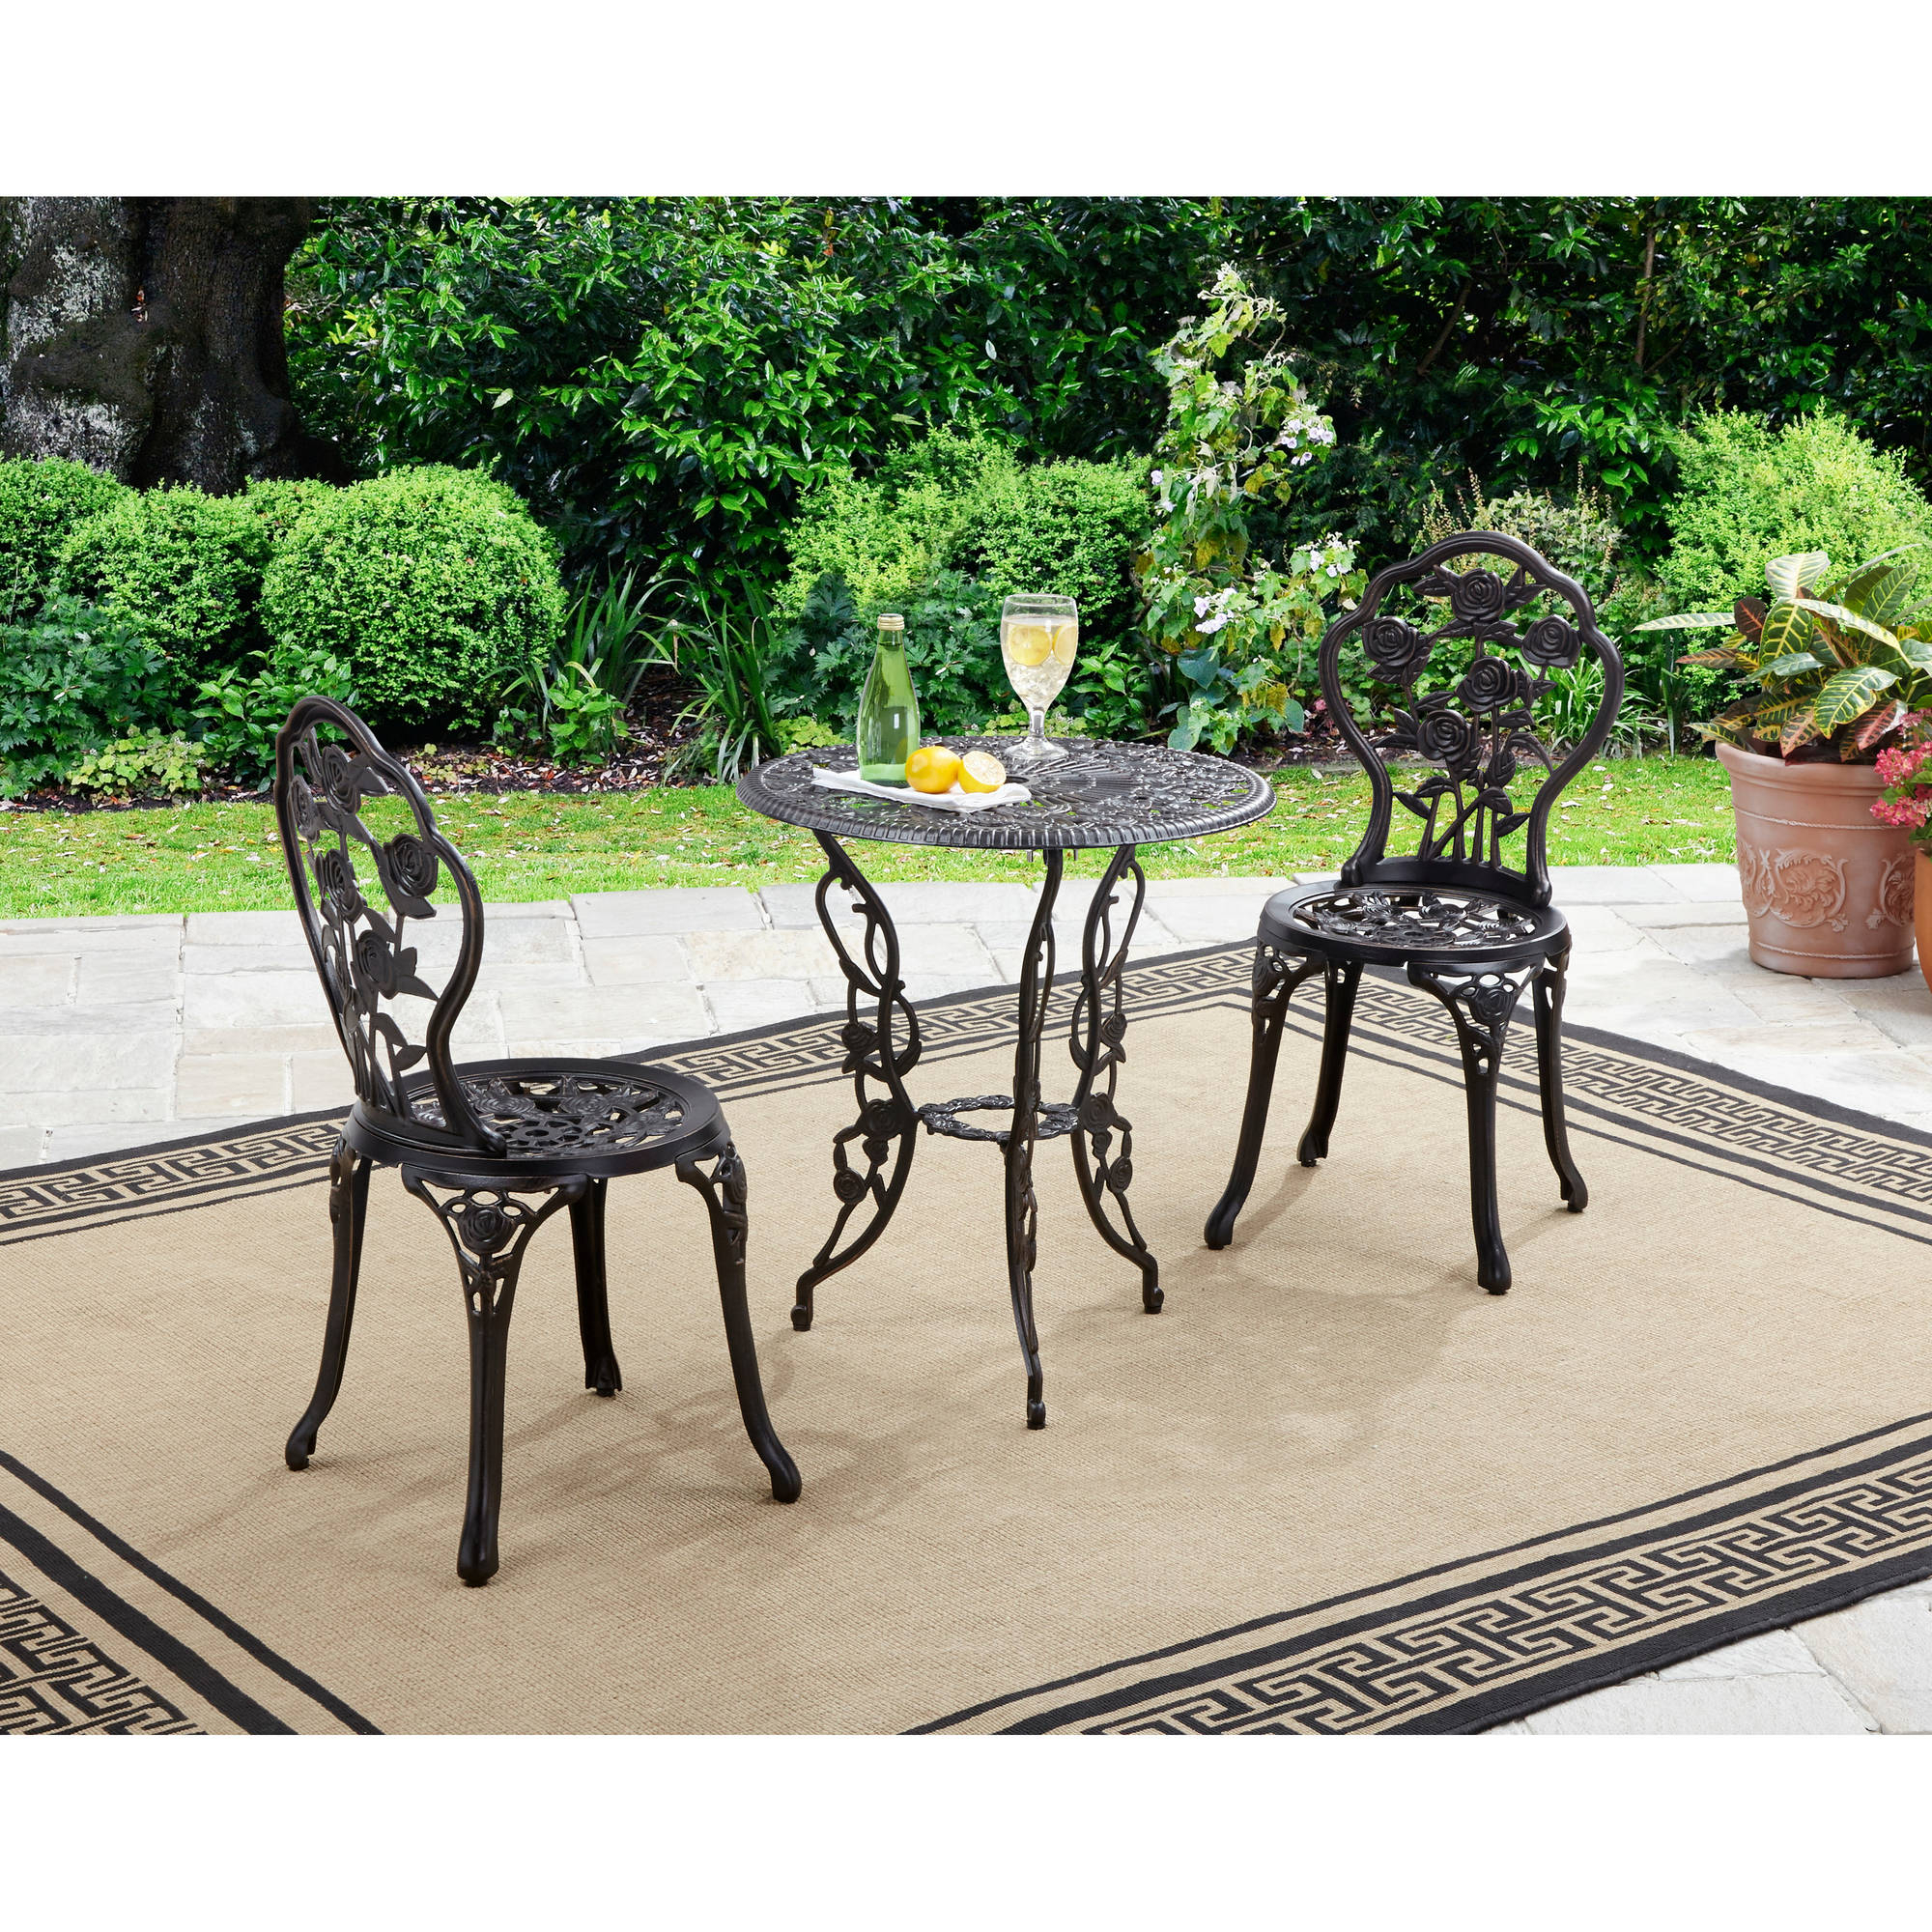 Better Homes And Gardens Rose 3 Piece Outdoor Bistro Set Inside 2 Person Antique Black Iron Outdoor Swings (View 24 of 25)